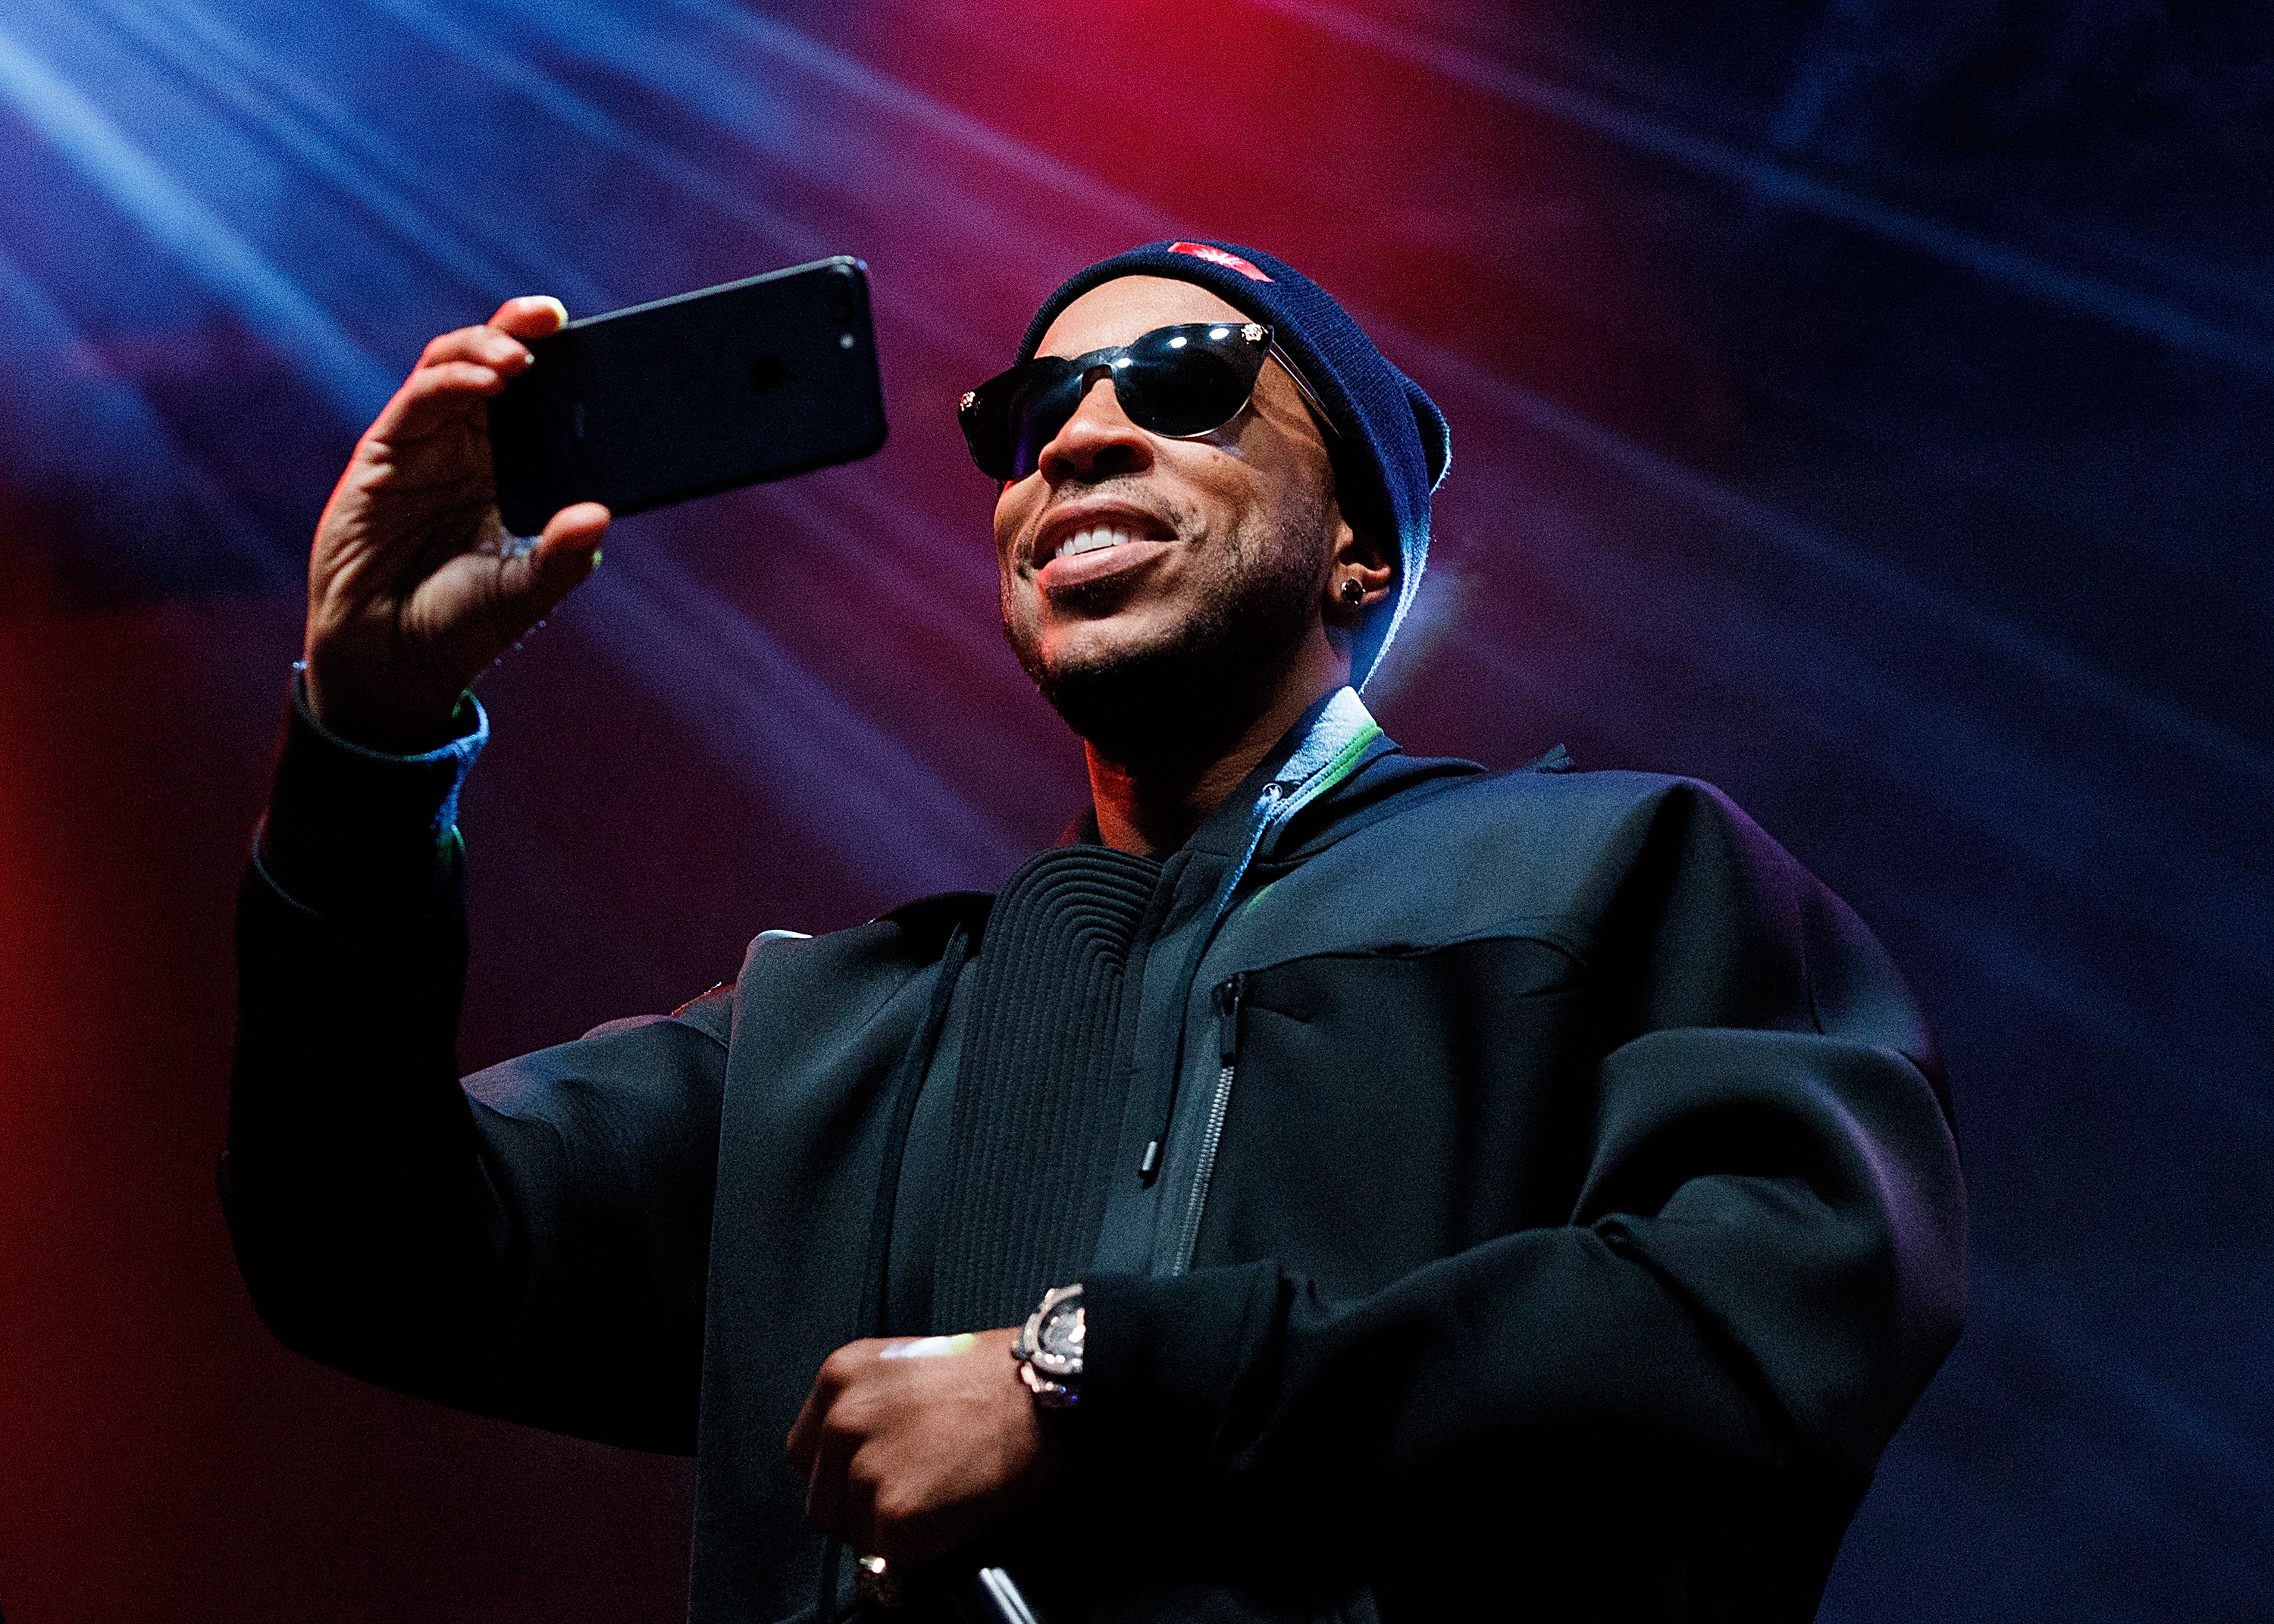 Hip-hop artist Ludacris performs on stage during Day 4 of Coors Light Snowbombing at Sun Peaks Resort on April 9, 2017 in Sun Peaks, Canada.